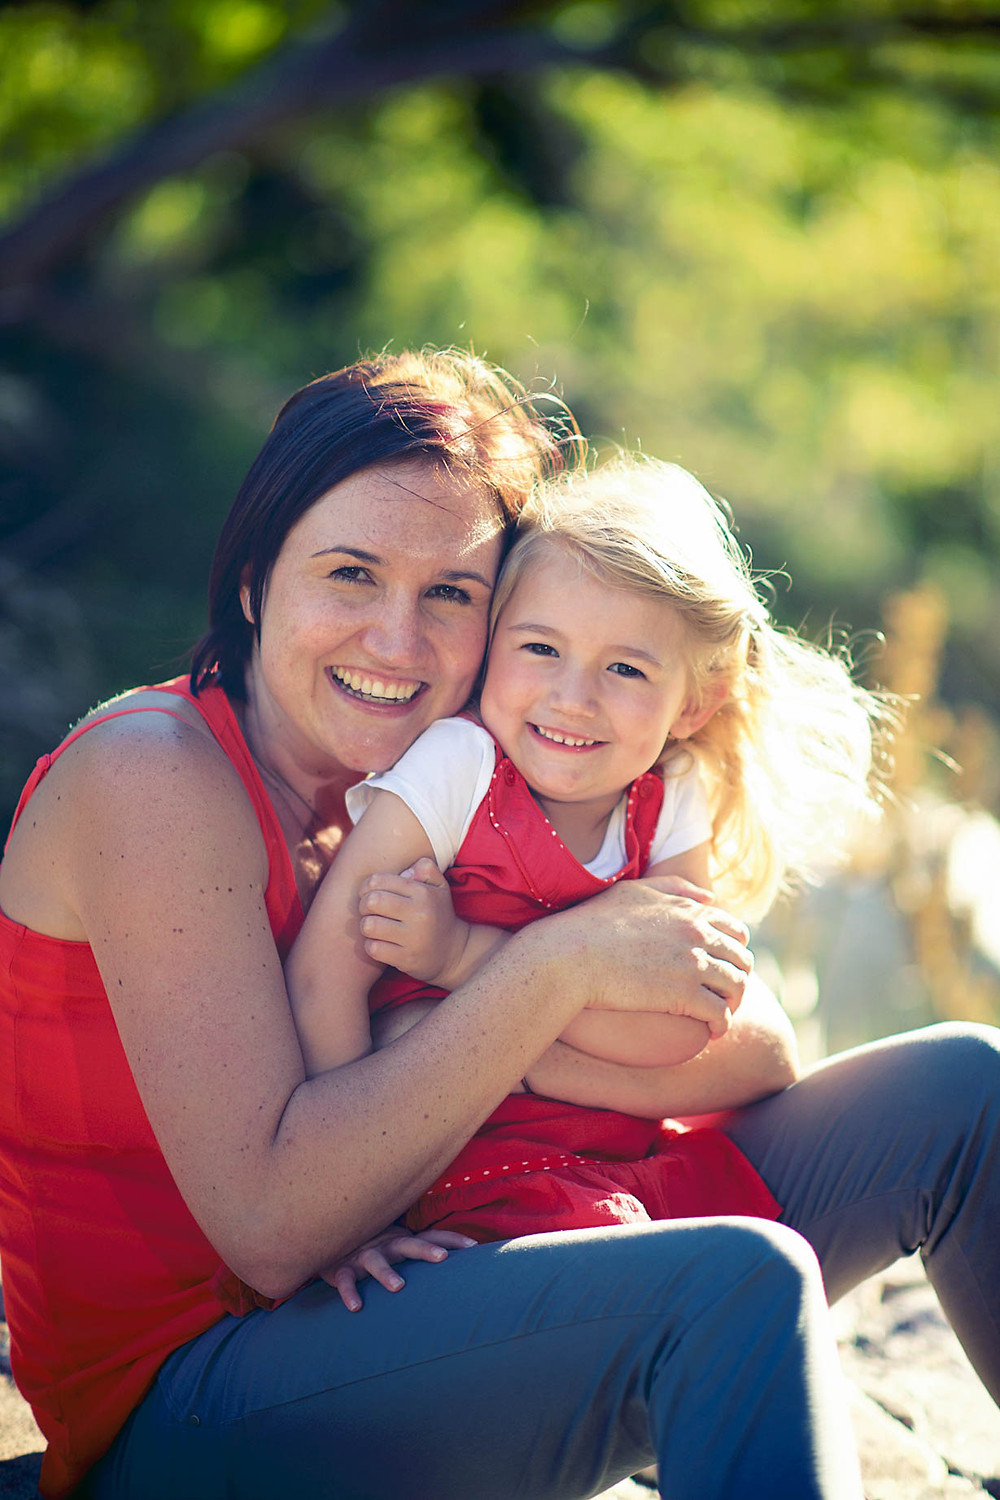 Peartree Photography -  141105 De Villiers Fam | http://peartree.co.za/blog/